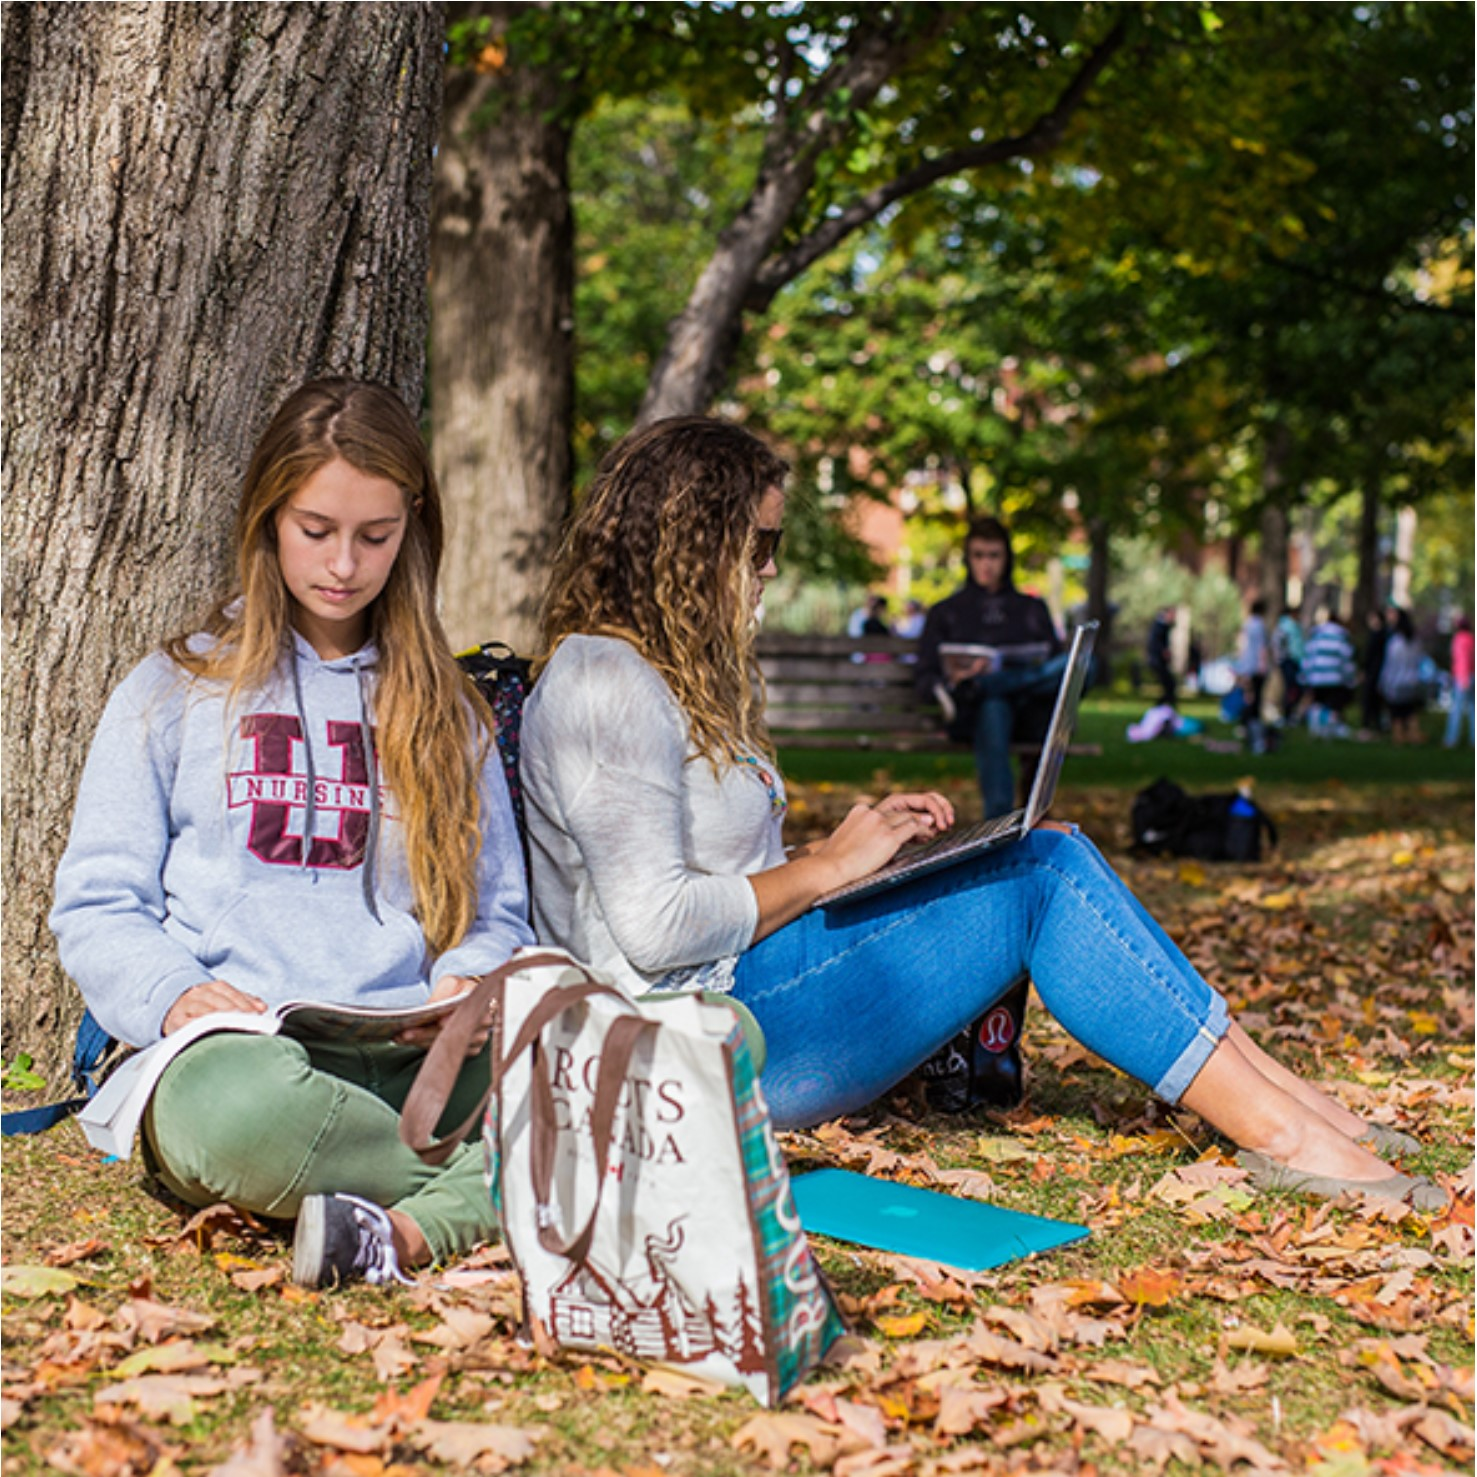 Two female students studying on the lawn